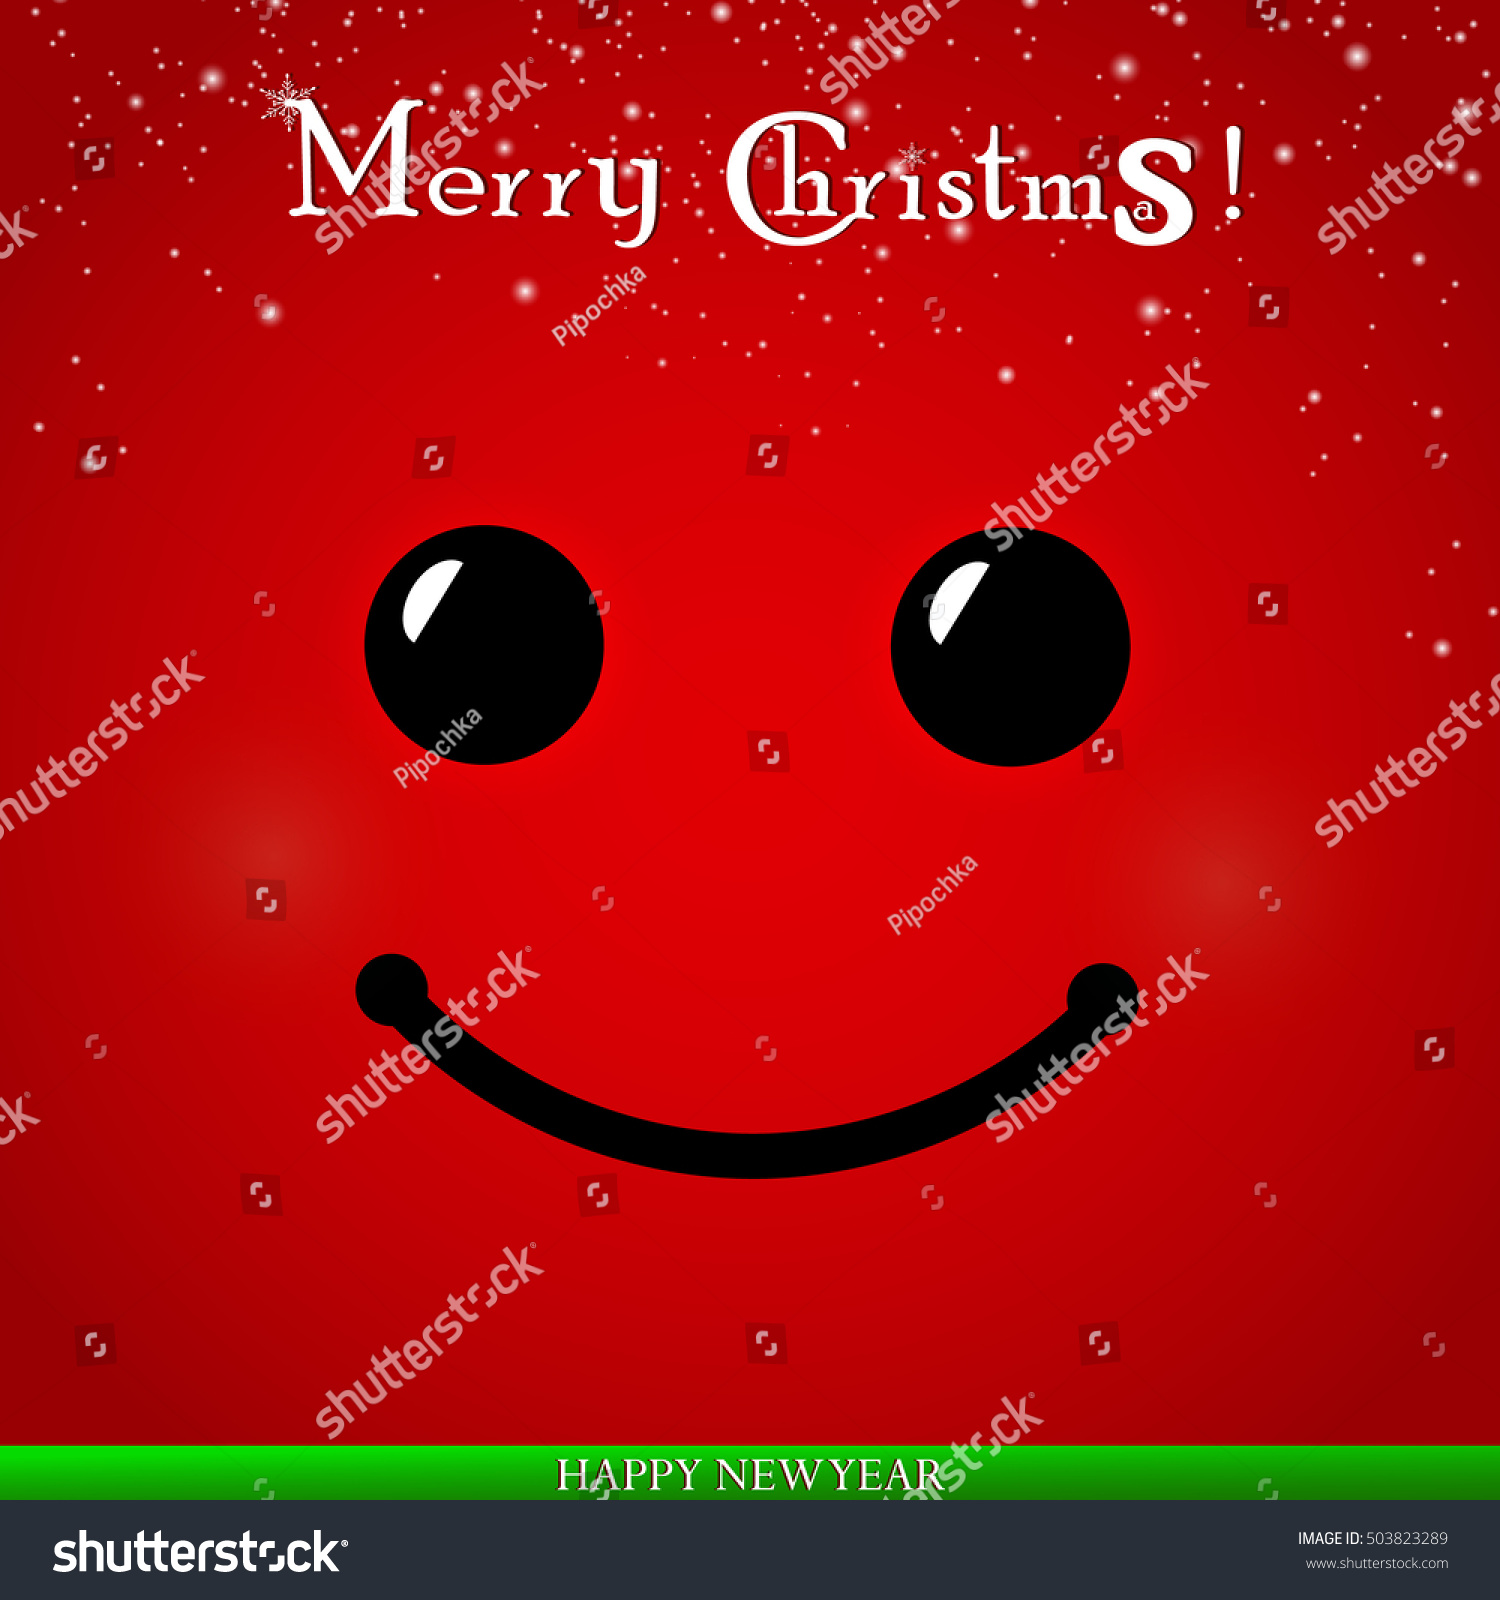 Smiley Face. Merry Christmas. Happy New Year. Red Smile